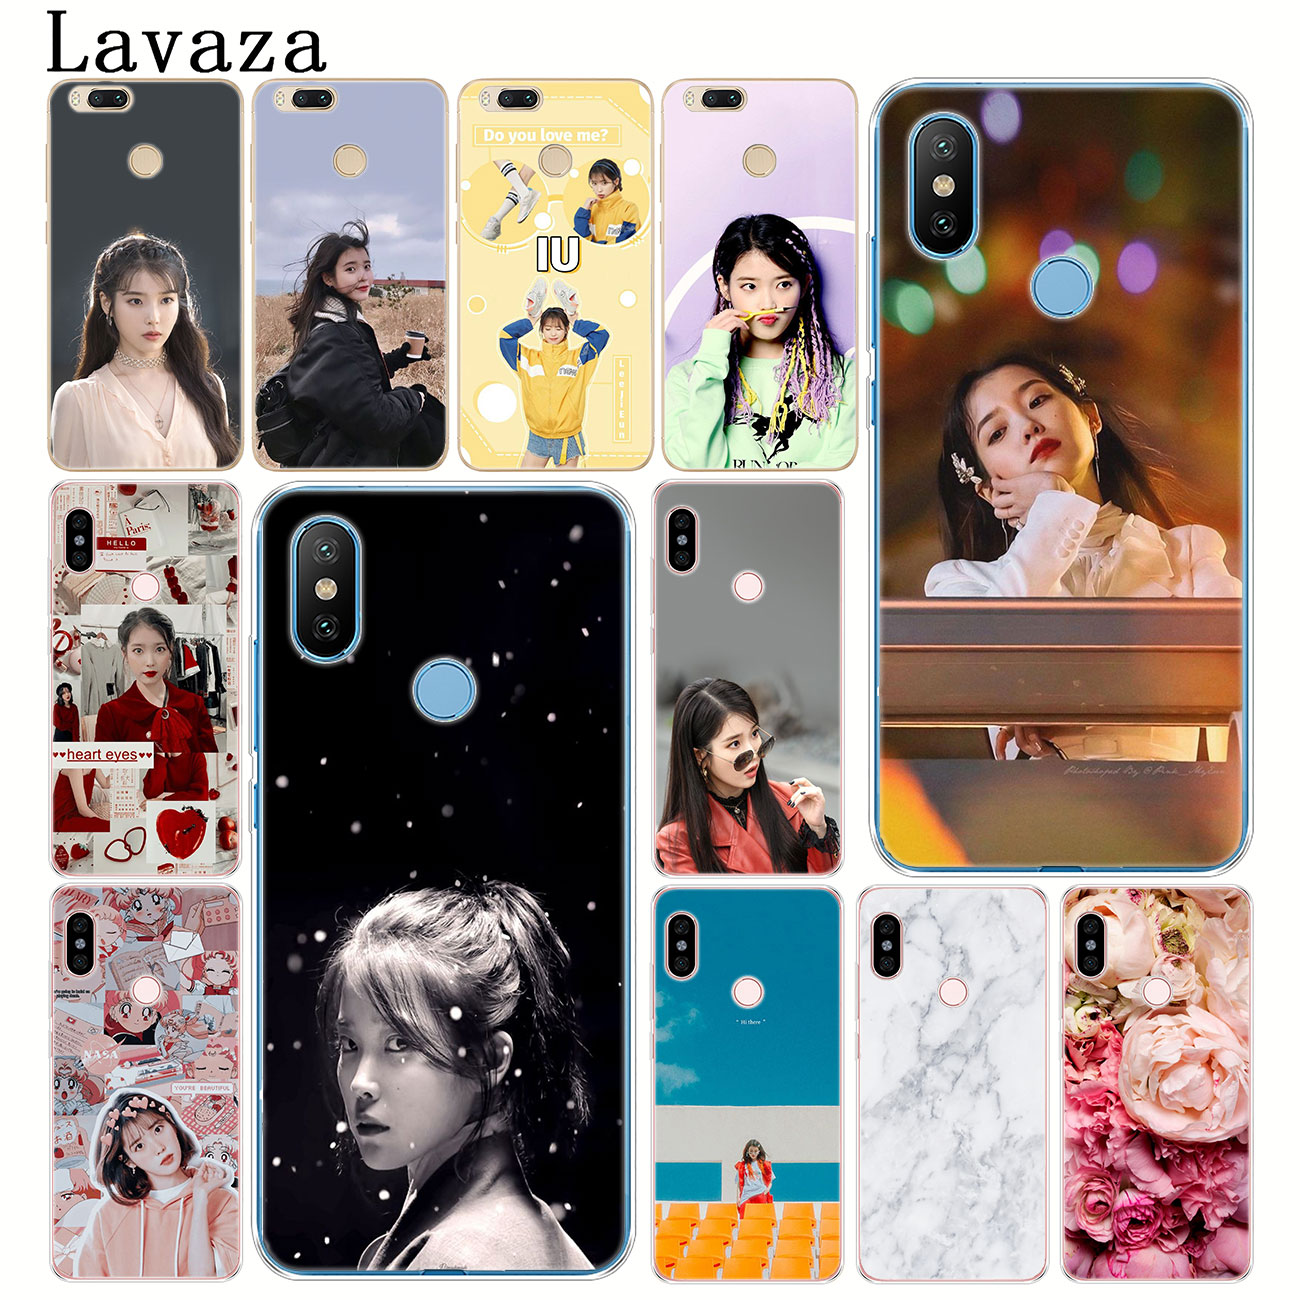 iu wallpaper POP Hard Phone Cover Case for Xiaomi Redmi Redmi K30 K20 8A 7A 6A